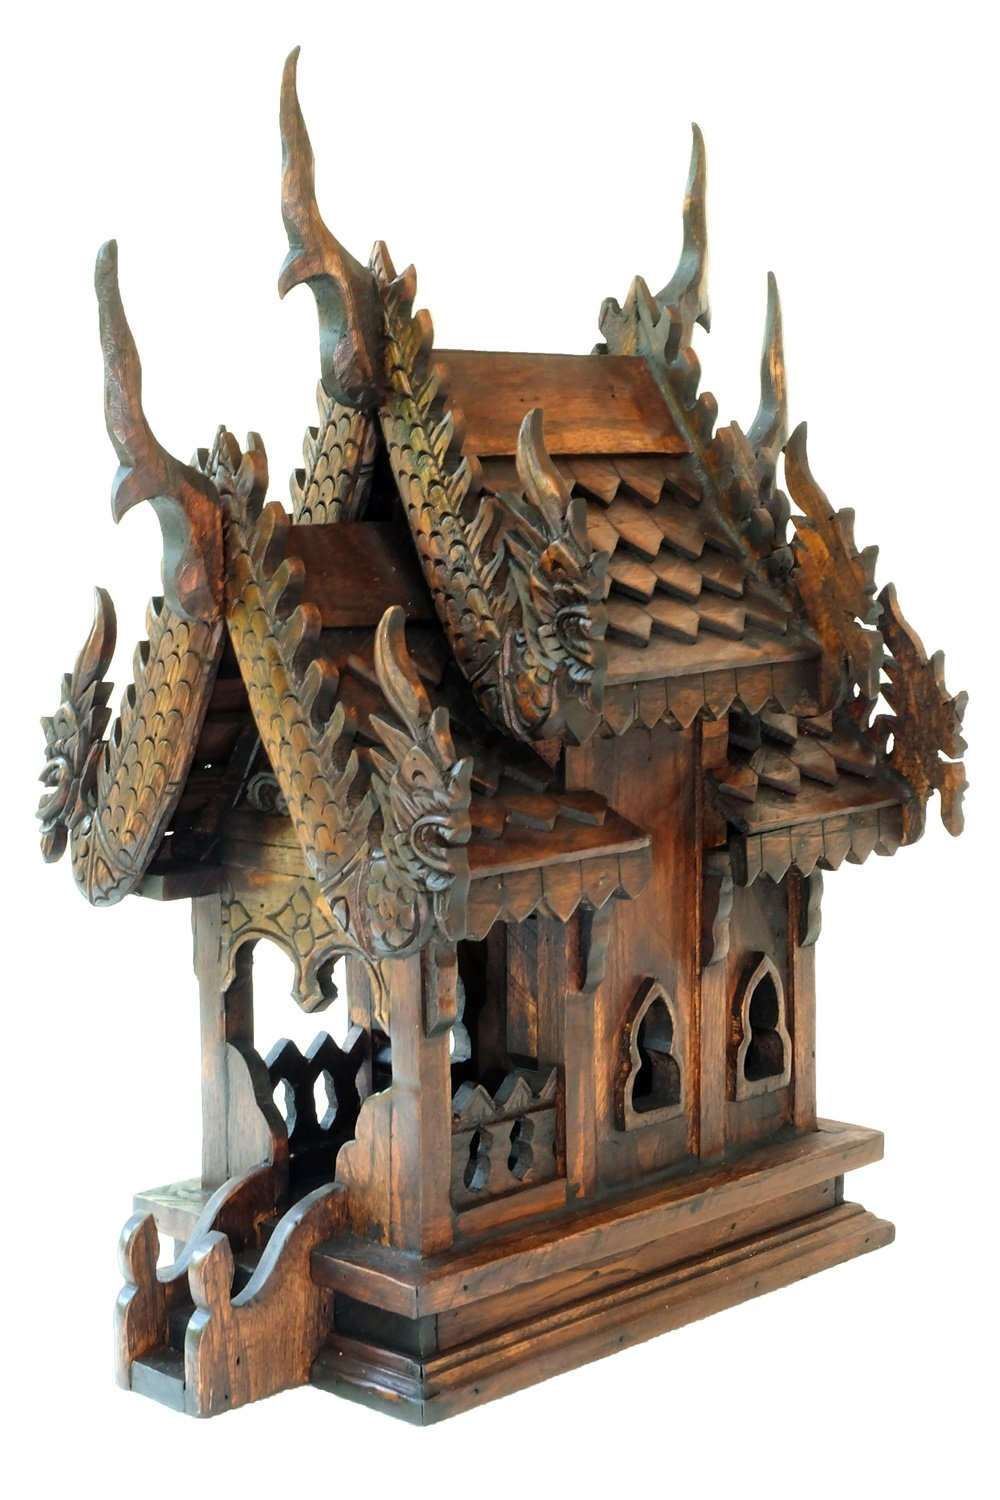 Design by UnseenThailand Thai Buddhism Handmade Teak Wood Spirit House (Teak Wood 2 Roof, H16''xW9''xL12'')